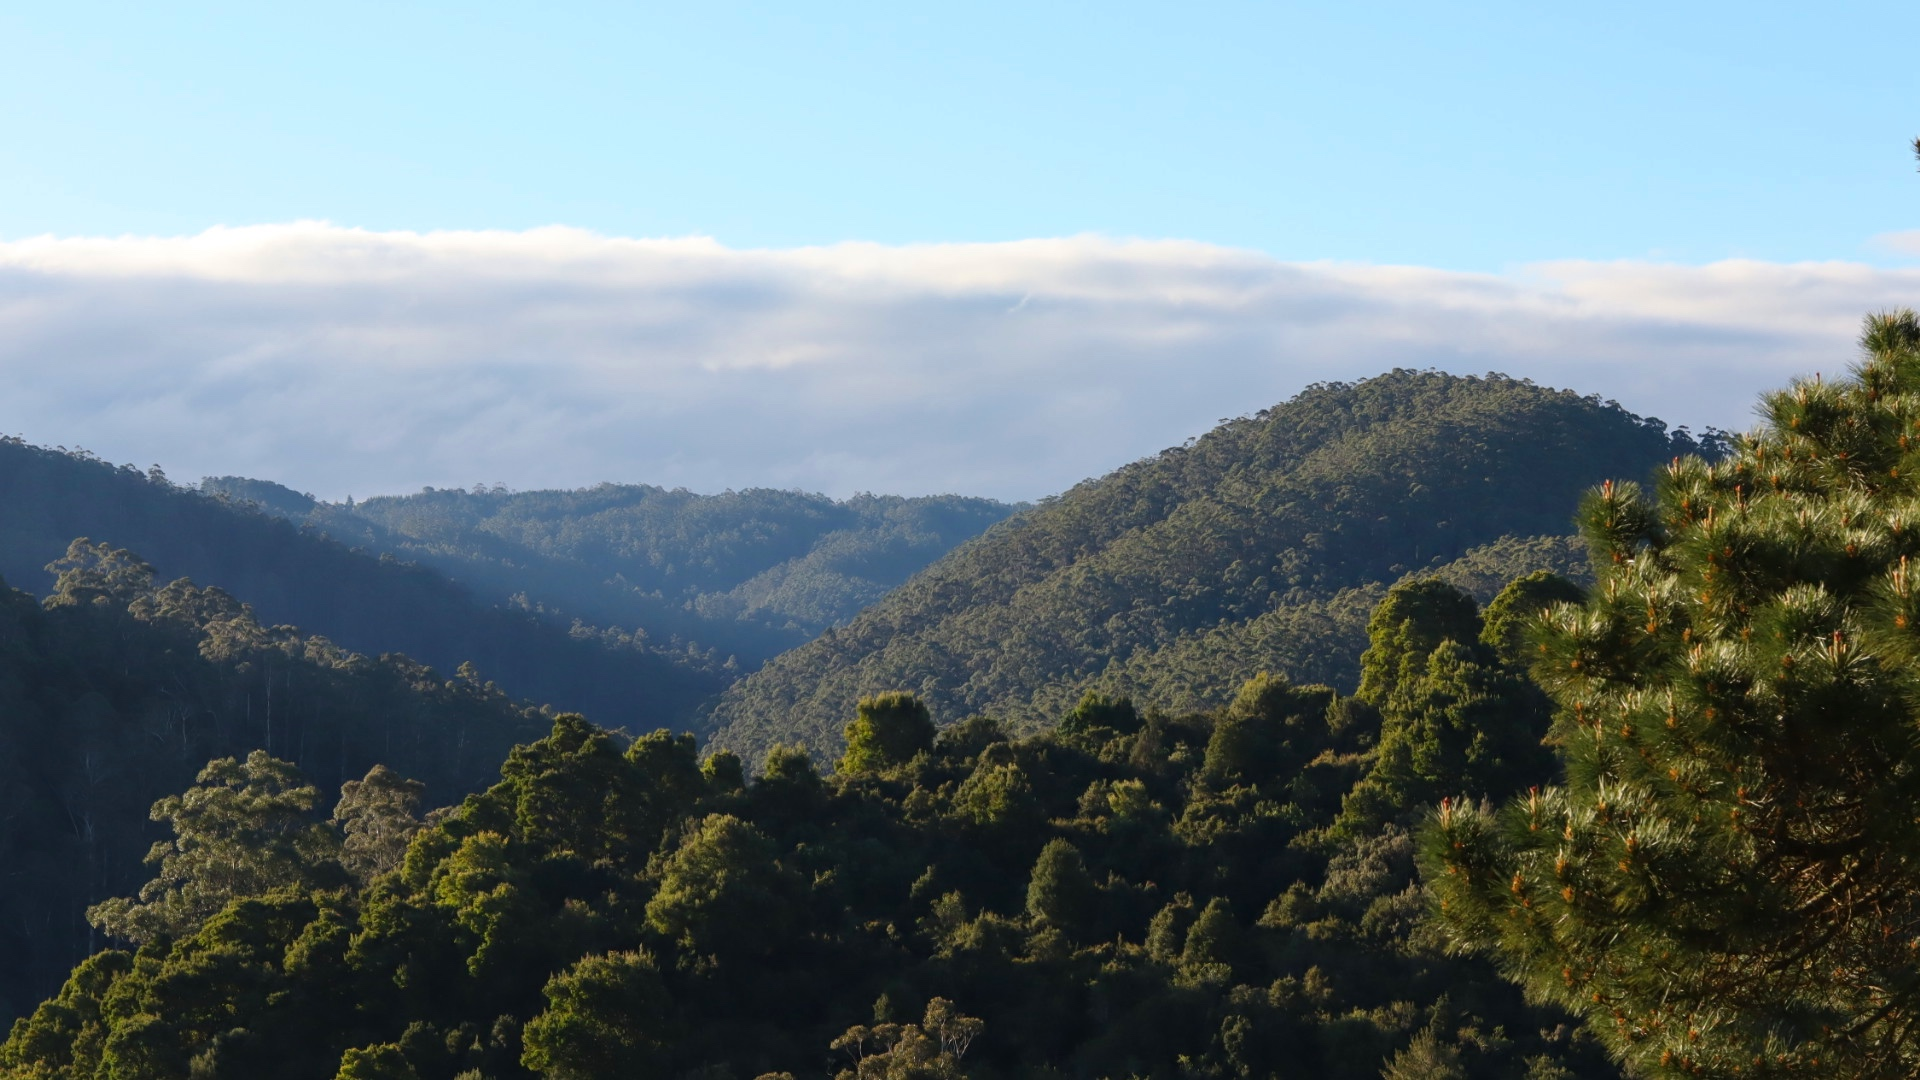 View From the Studio over the Hills